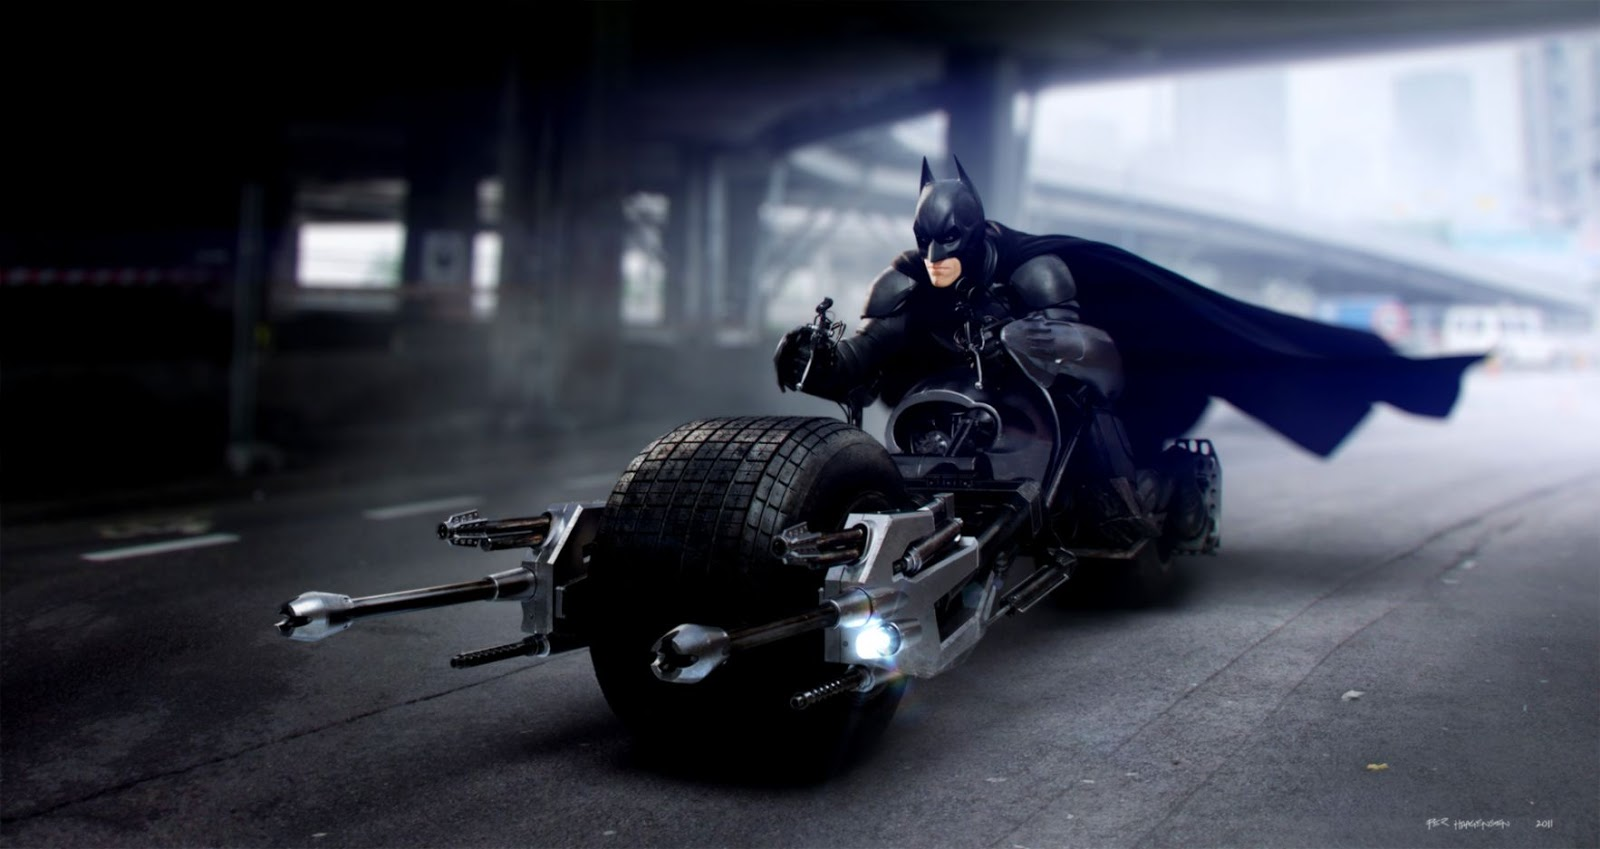 Bat Pod Moto Batman Dark Knight Rises Wallpaper Opera Wallpapers 1600x849